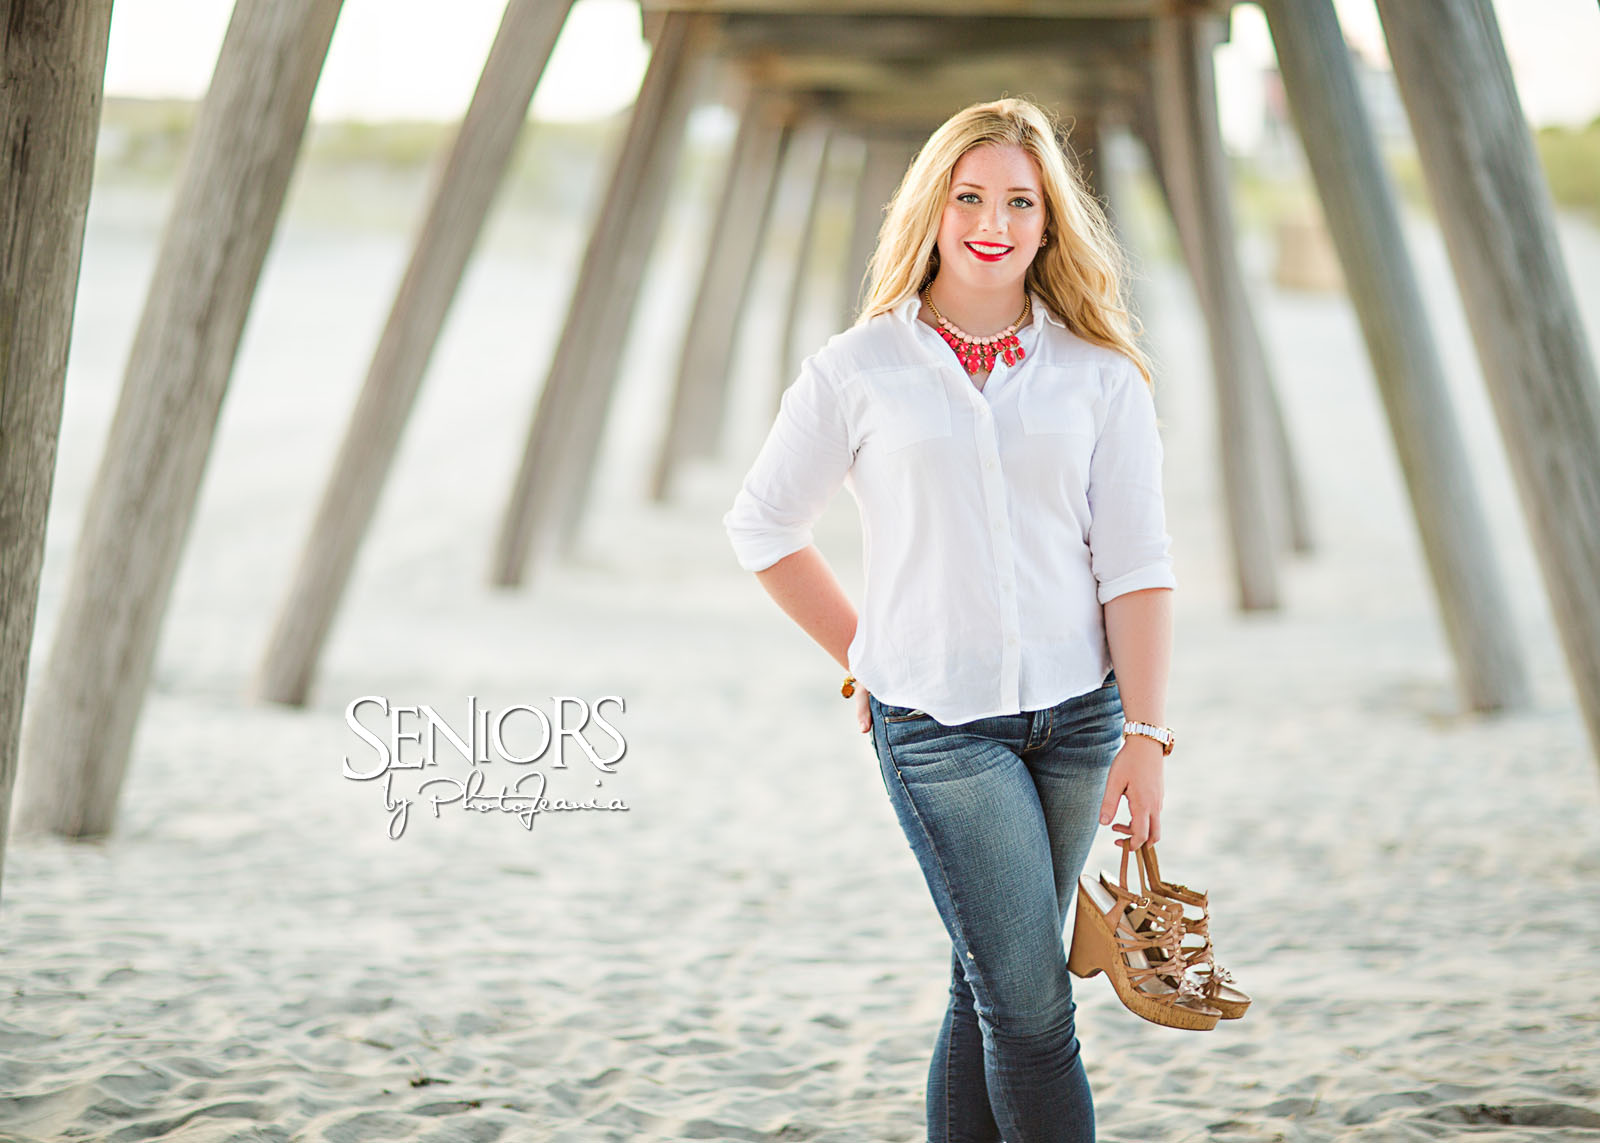 Senior Pictures Avalon NJ